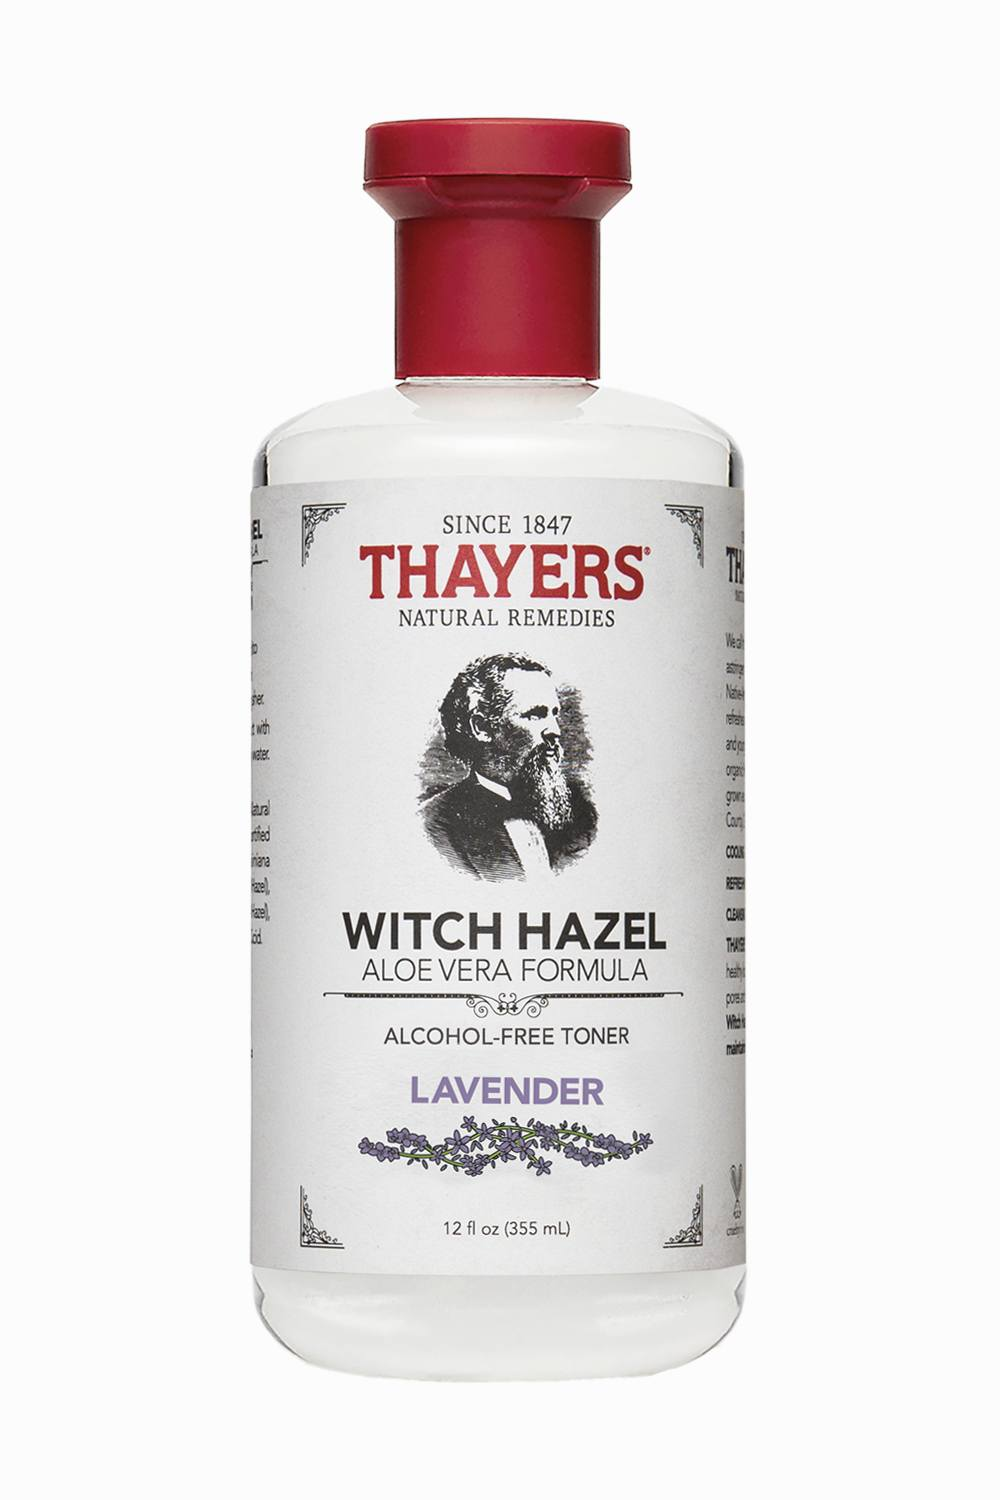 Supplements & Vitamins - Thayers - Lavender Witch Hazel Toner - 355mL